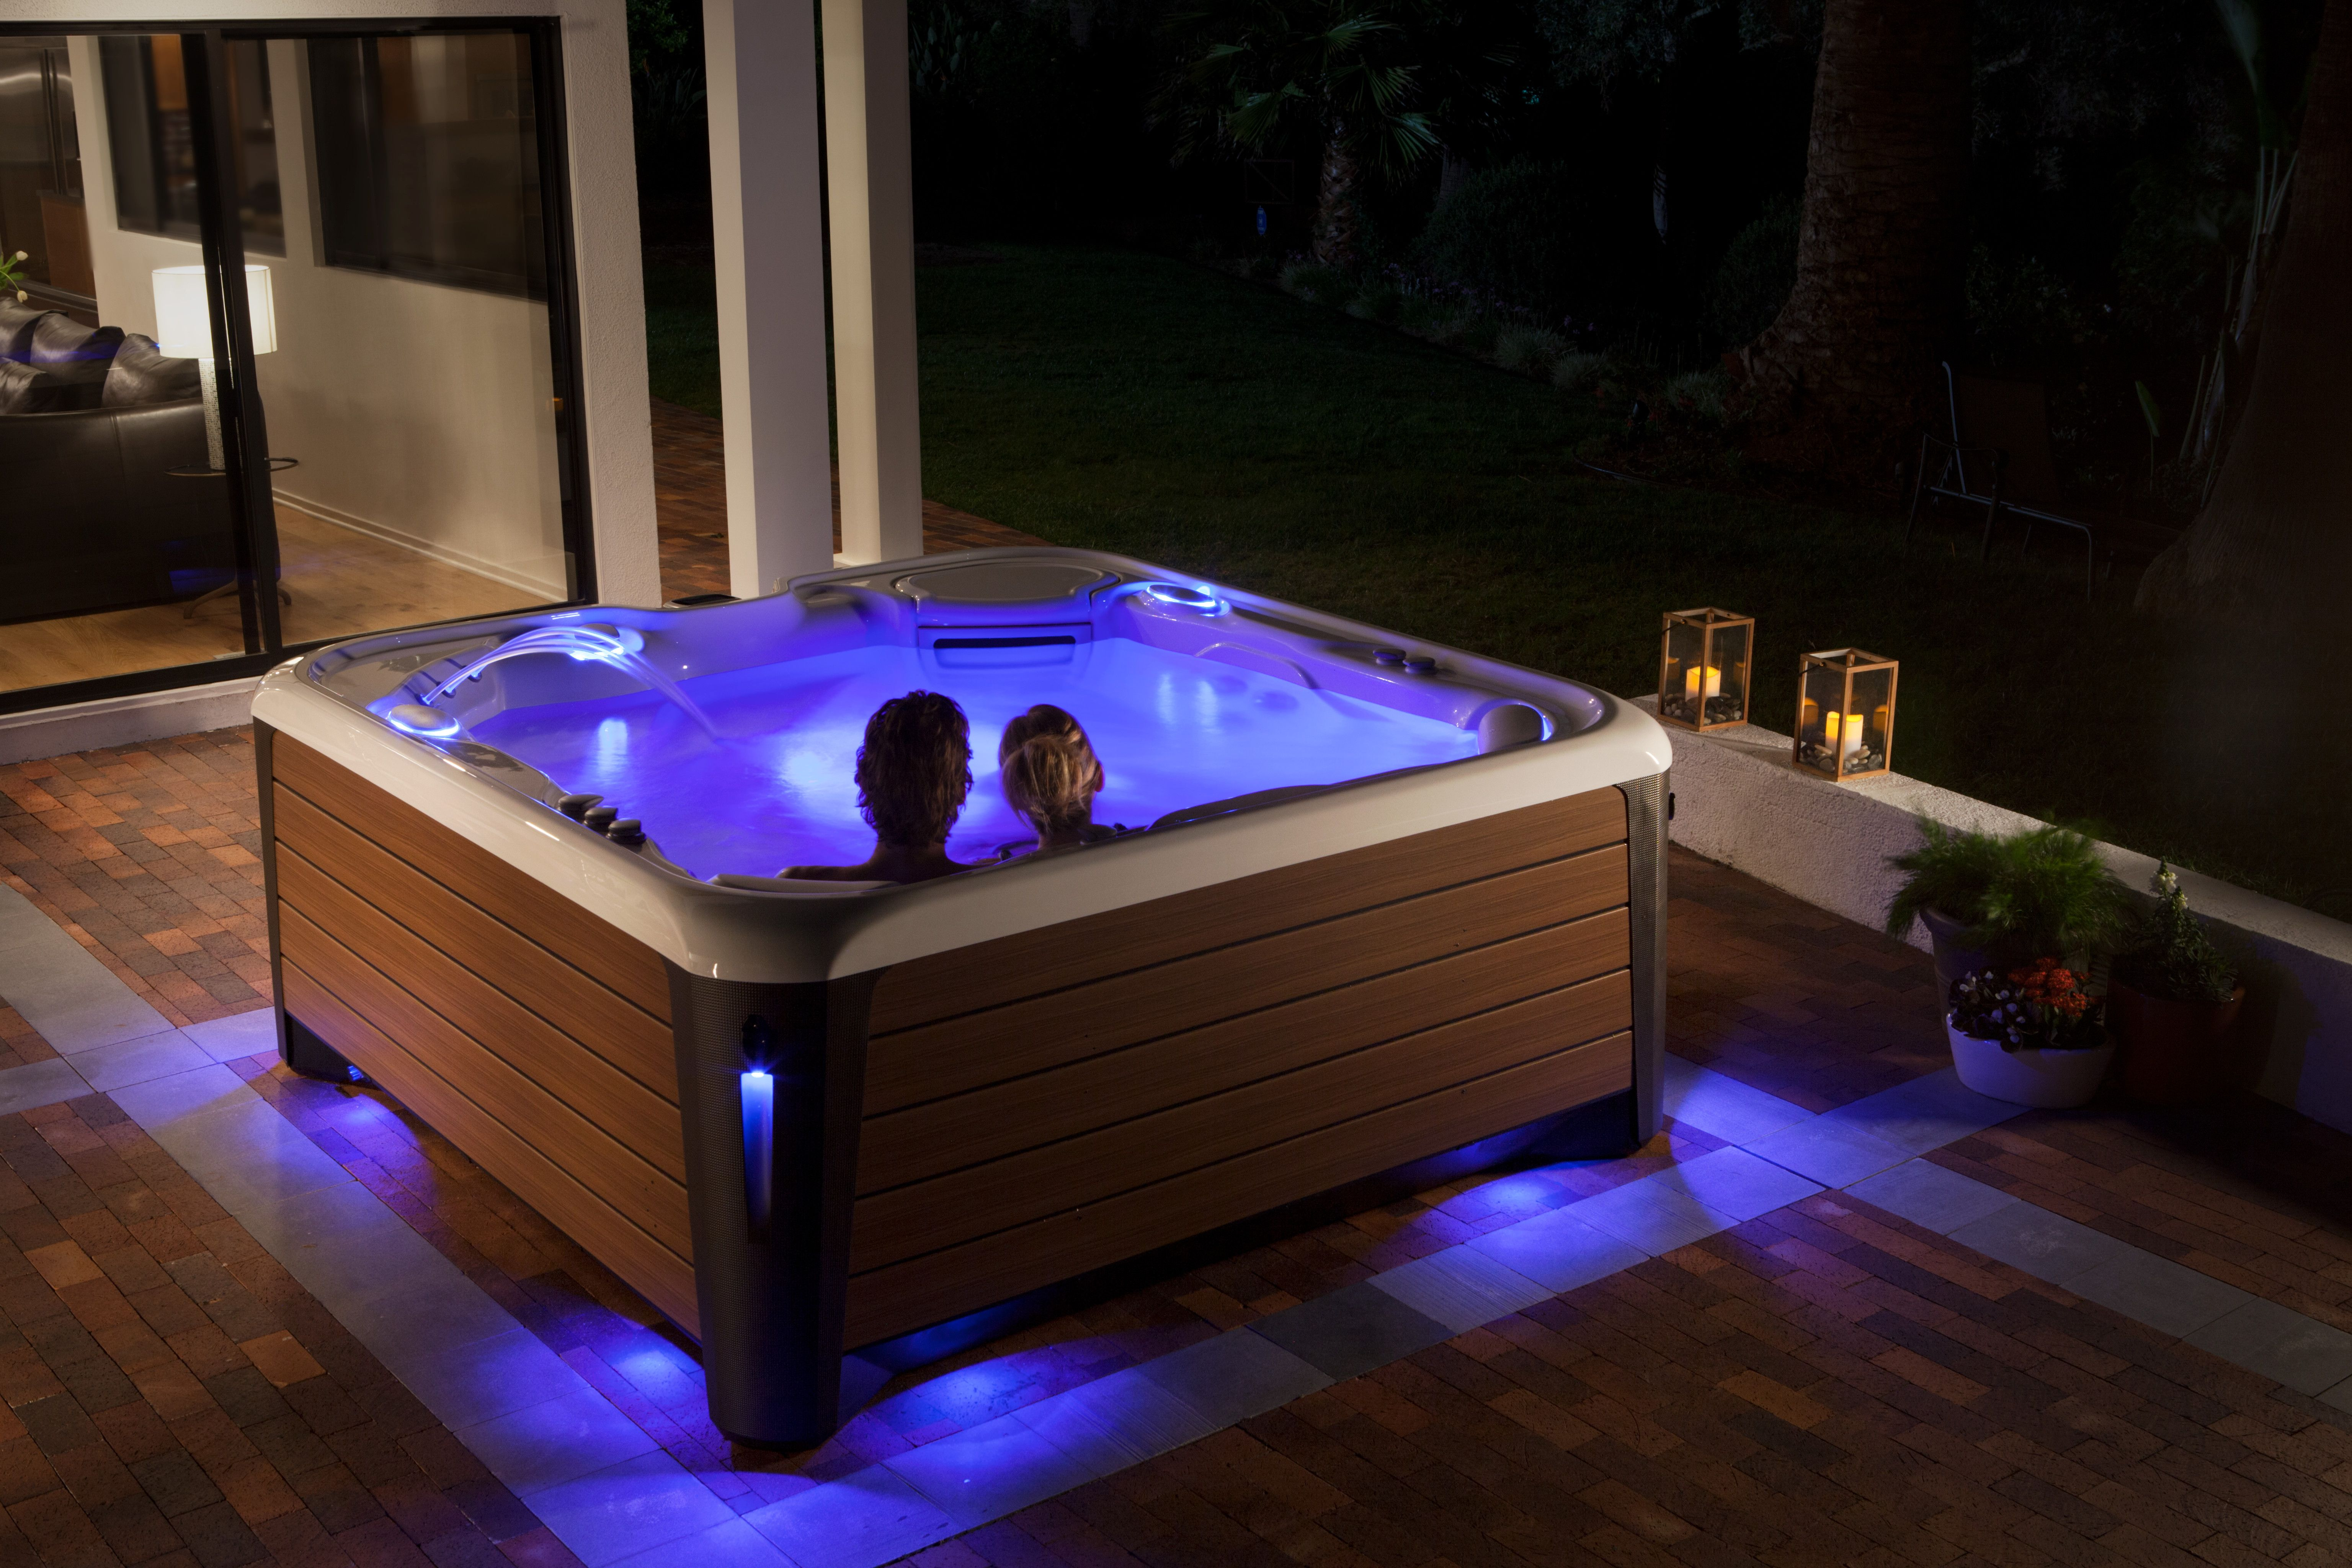 of get feature i expensive payment spa more should prices tub nxt image can if buy blog vanguard springs with a highlife waterfall jacuzzi low hot